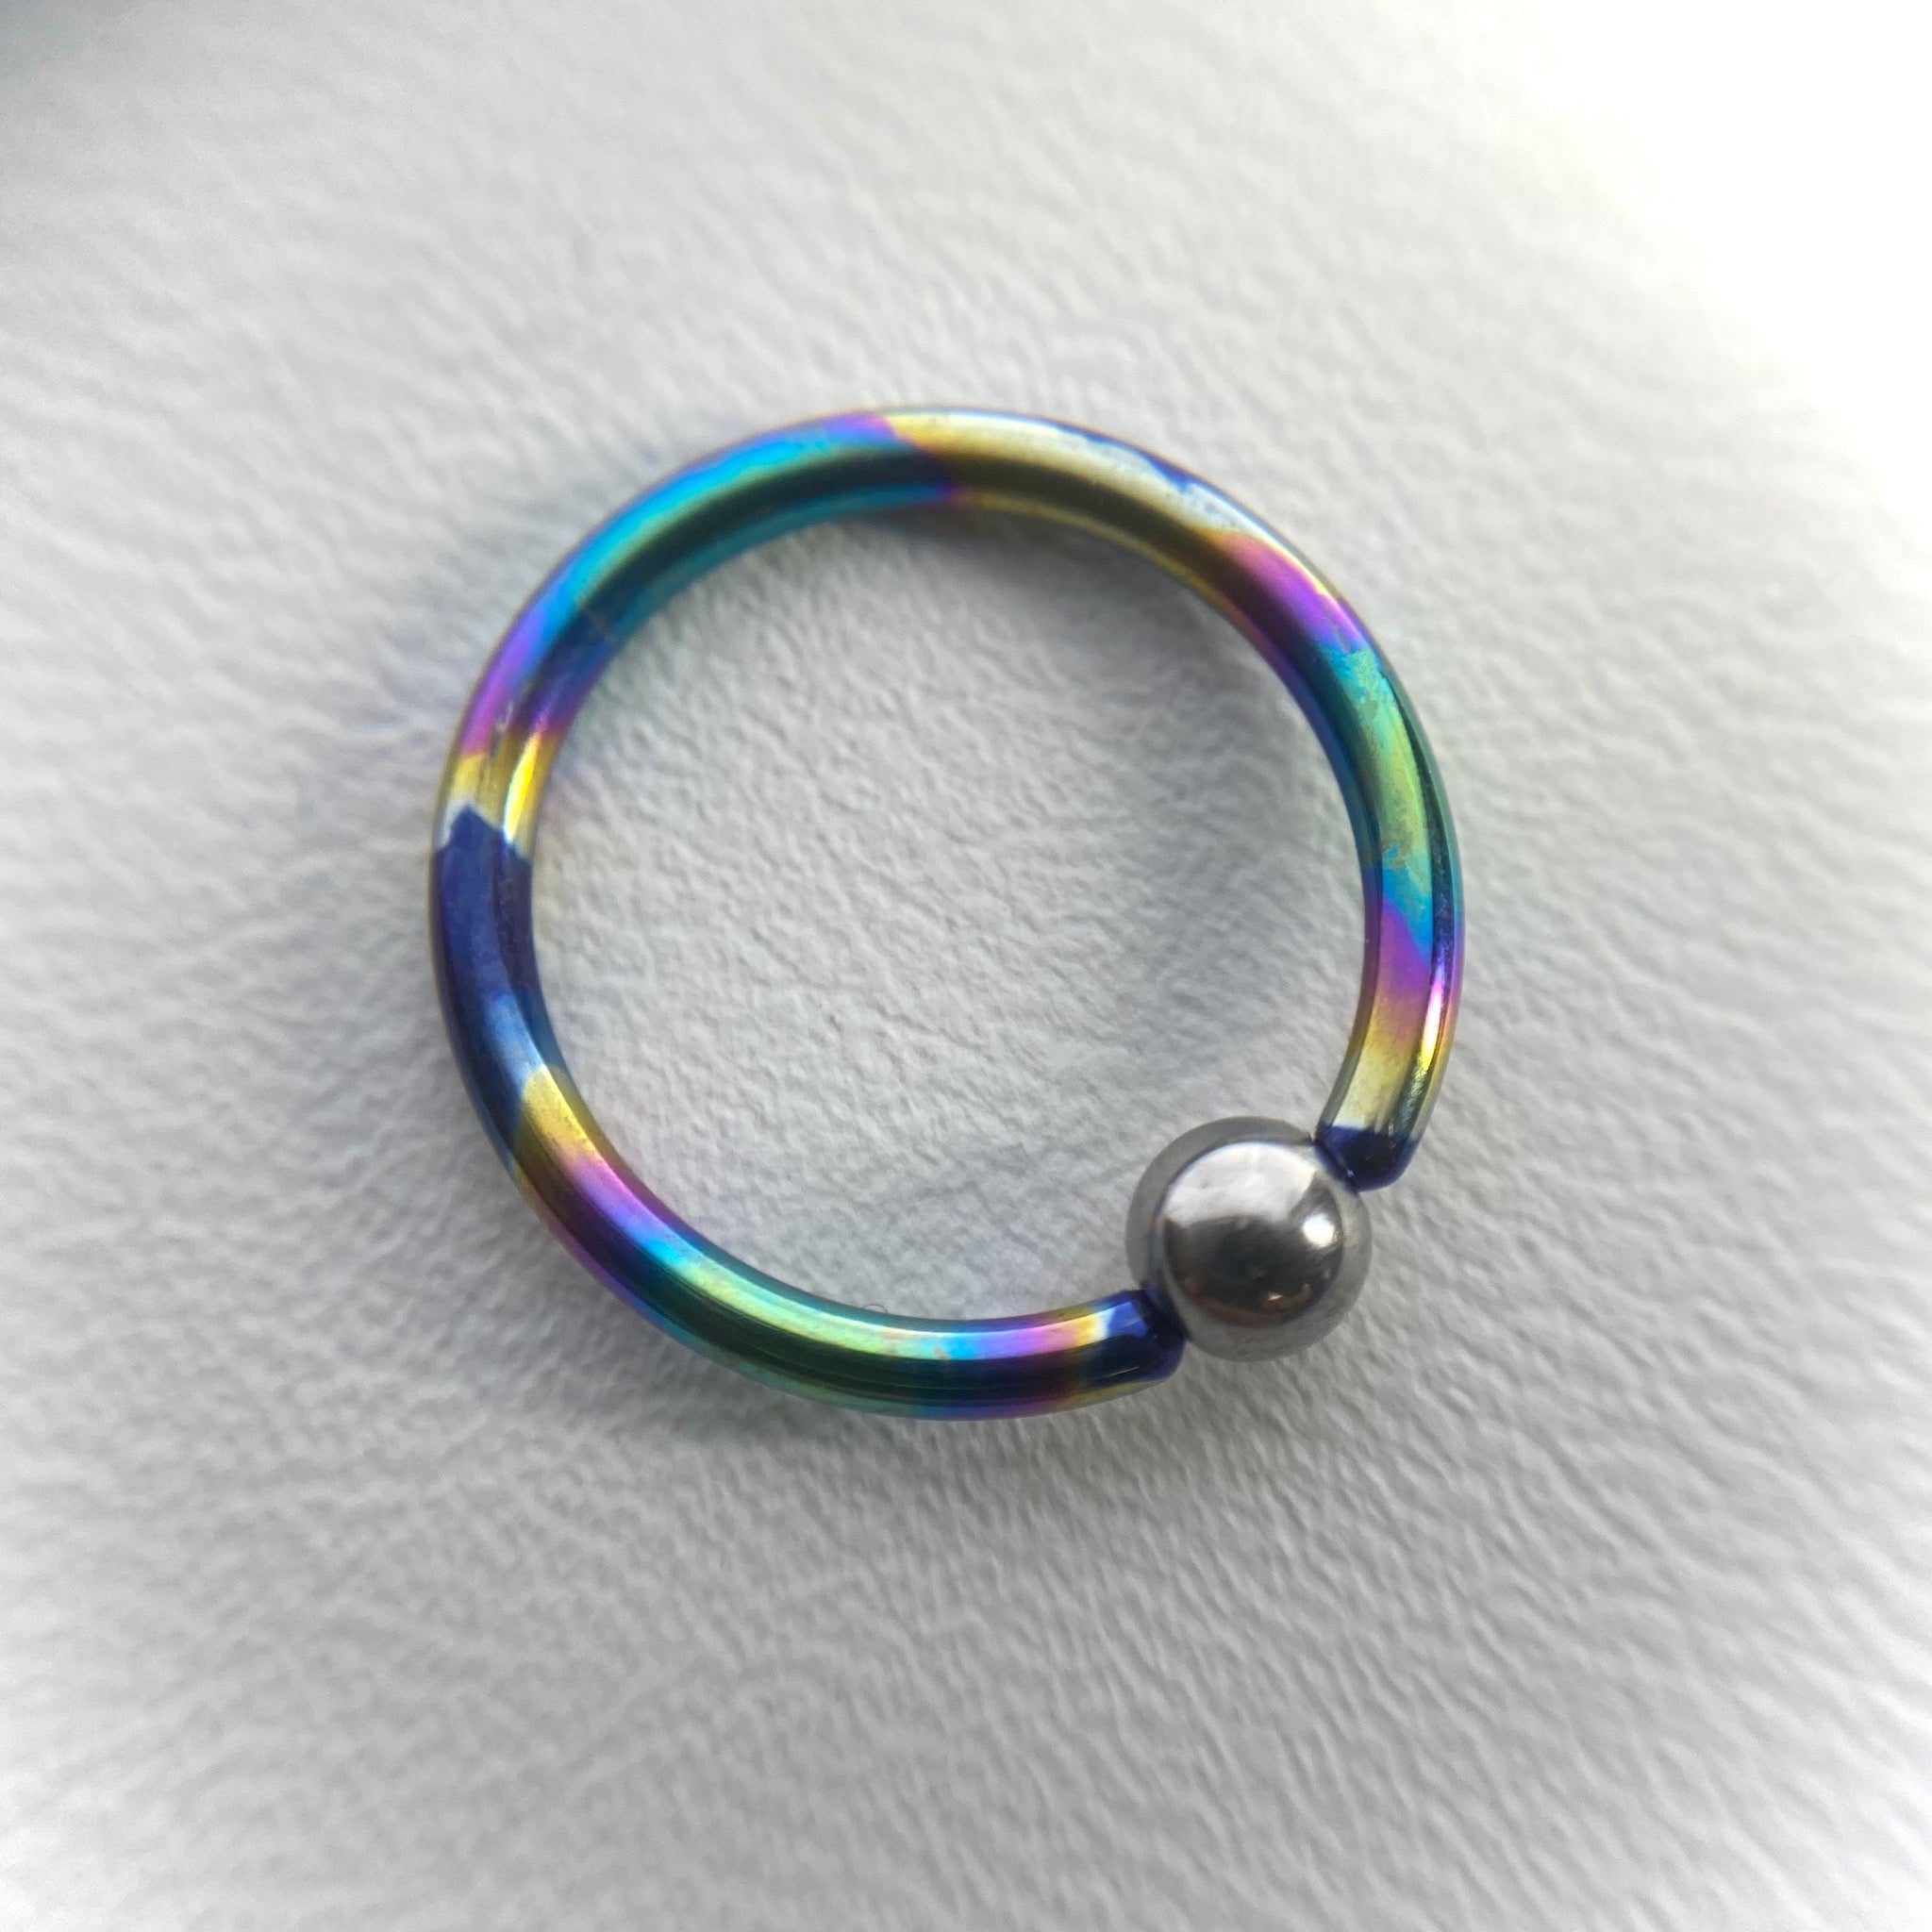 14g Titanium Captive Bead Ring w Plain Bead (CBR)